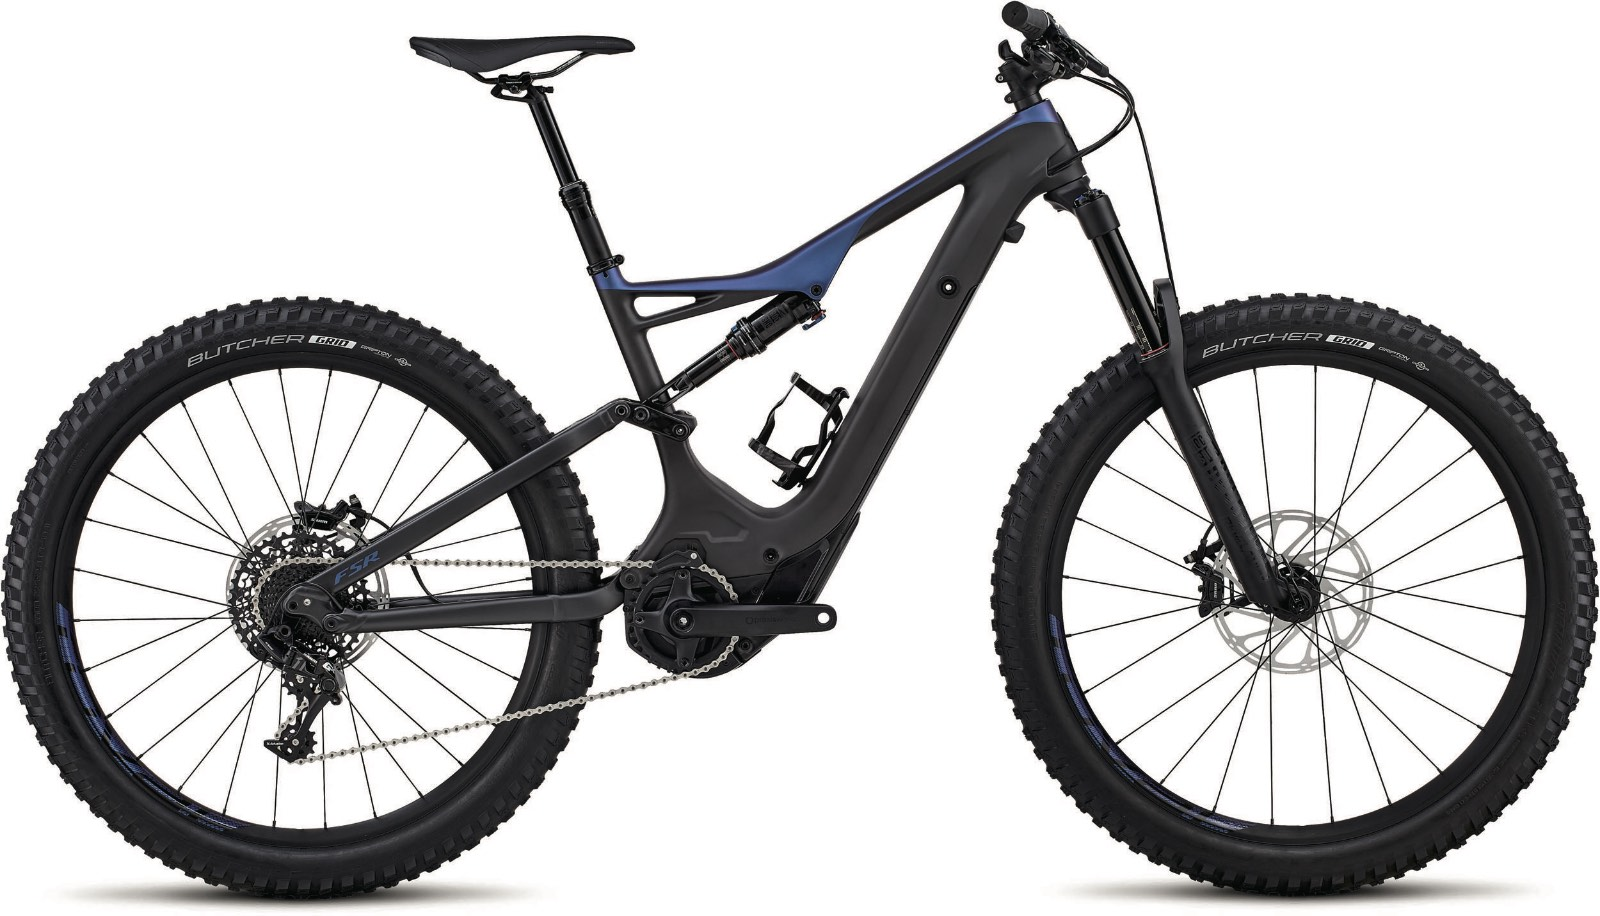 Specialized Turbo Levo Fsr Comp Carbon